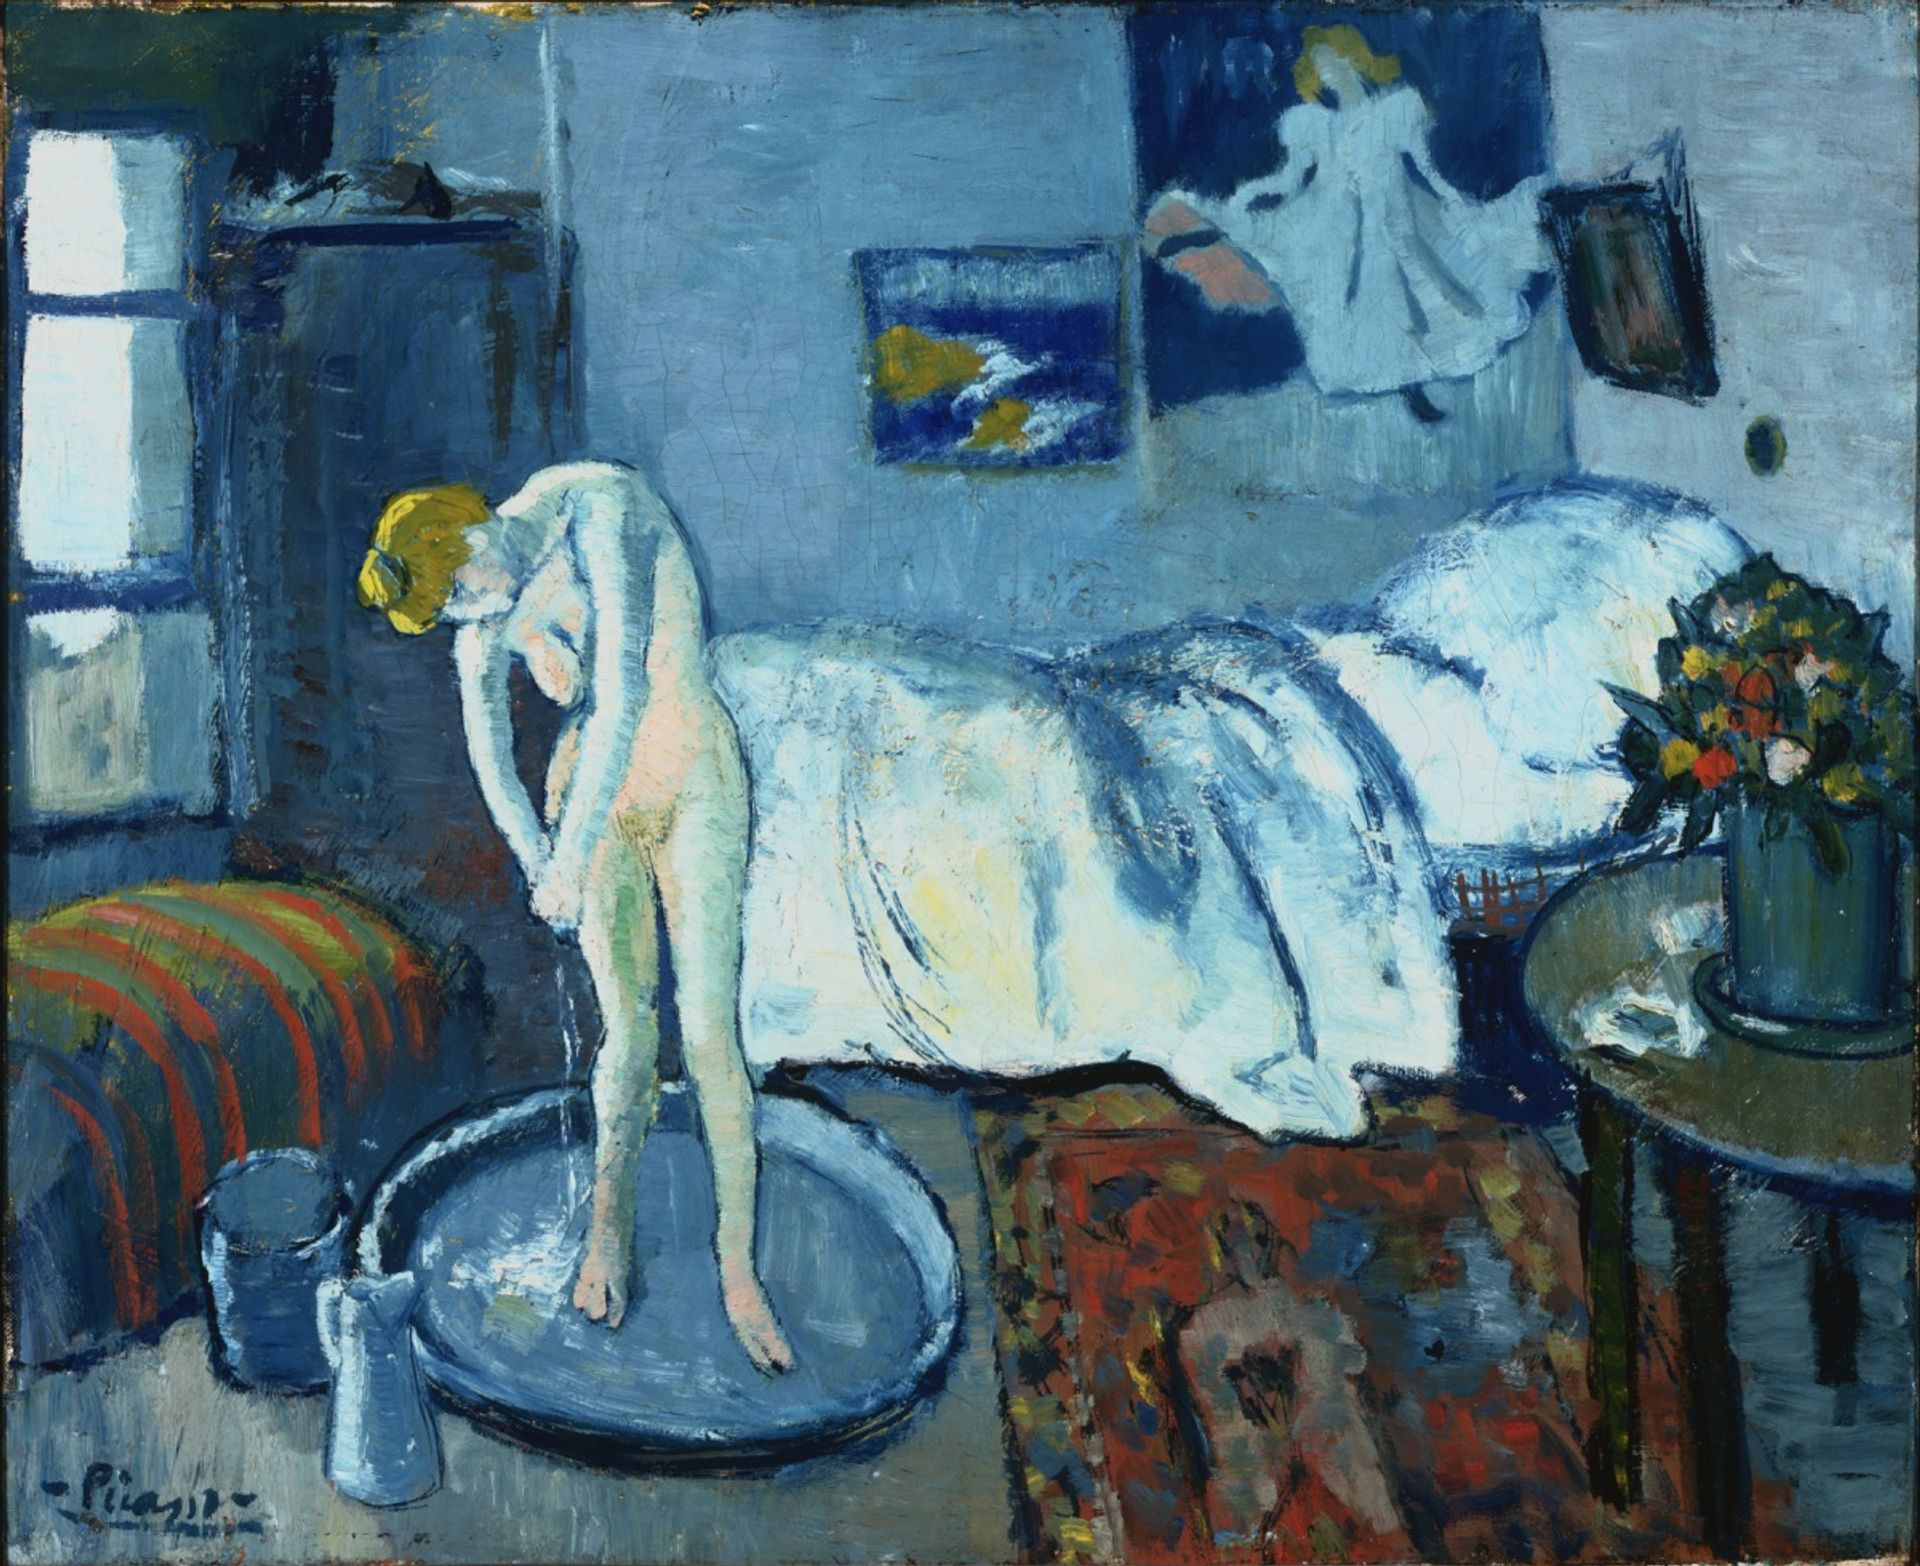 Pablo Picasso, The Blue Room (1901). Acquired in 1927 by The Phillips Collection, Washington, DC © Picasso Estate / SOCAN (2021)